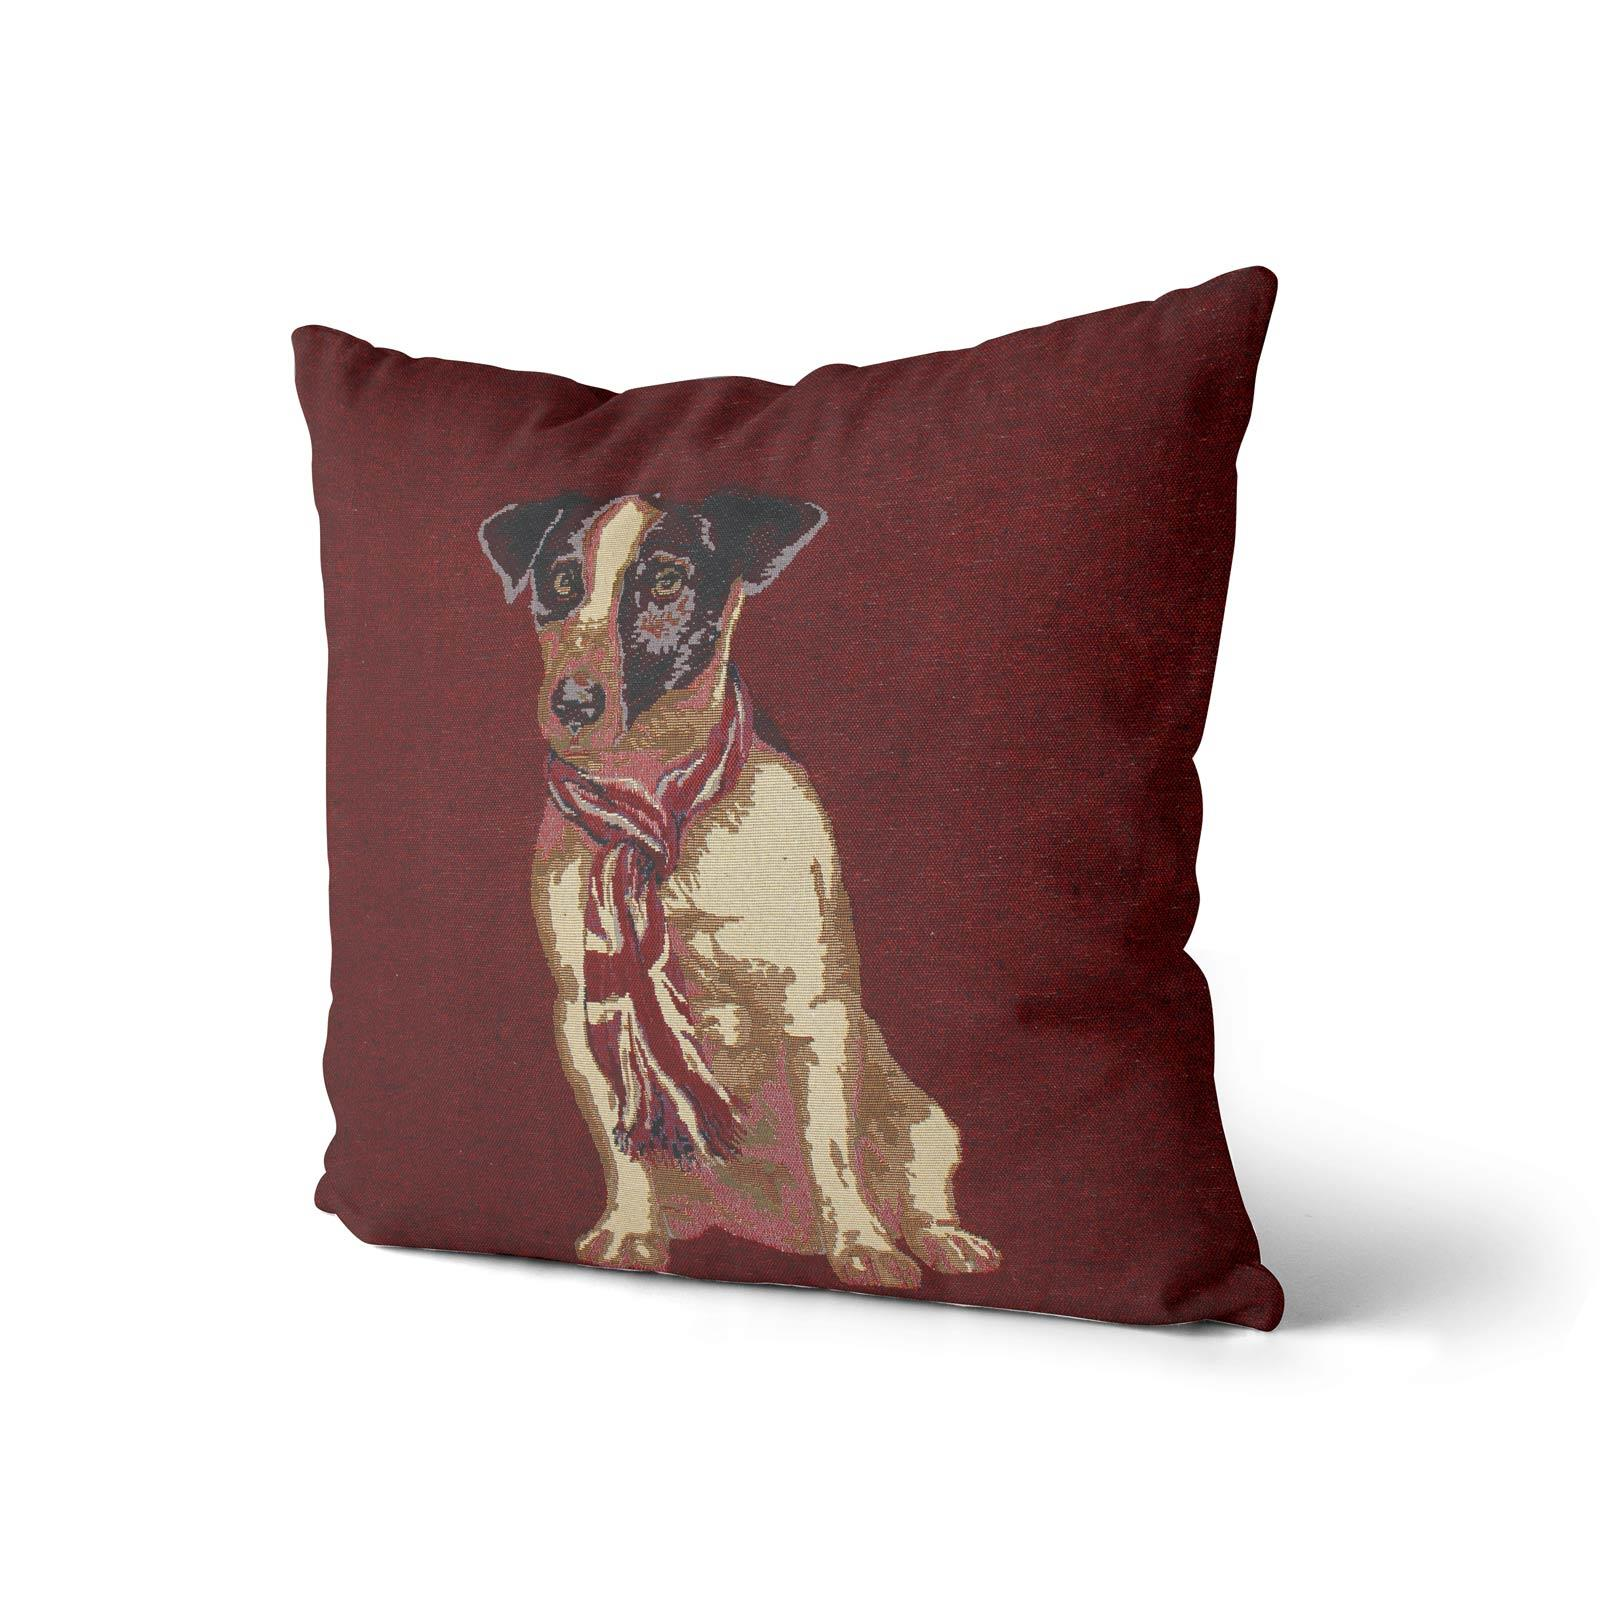 Tapestry-Cushion-Covers-Vintage-Pillow-Cover-Collection-18-034-45cm-Filled-Cushions thumbnail 89